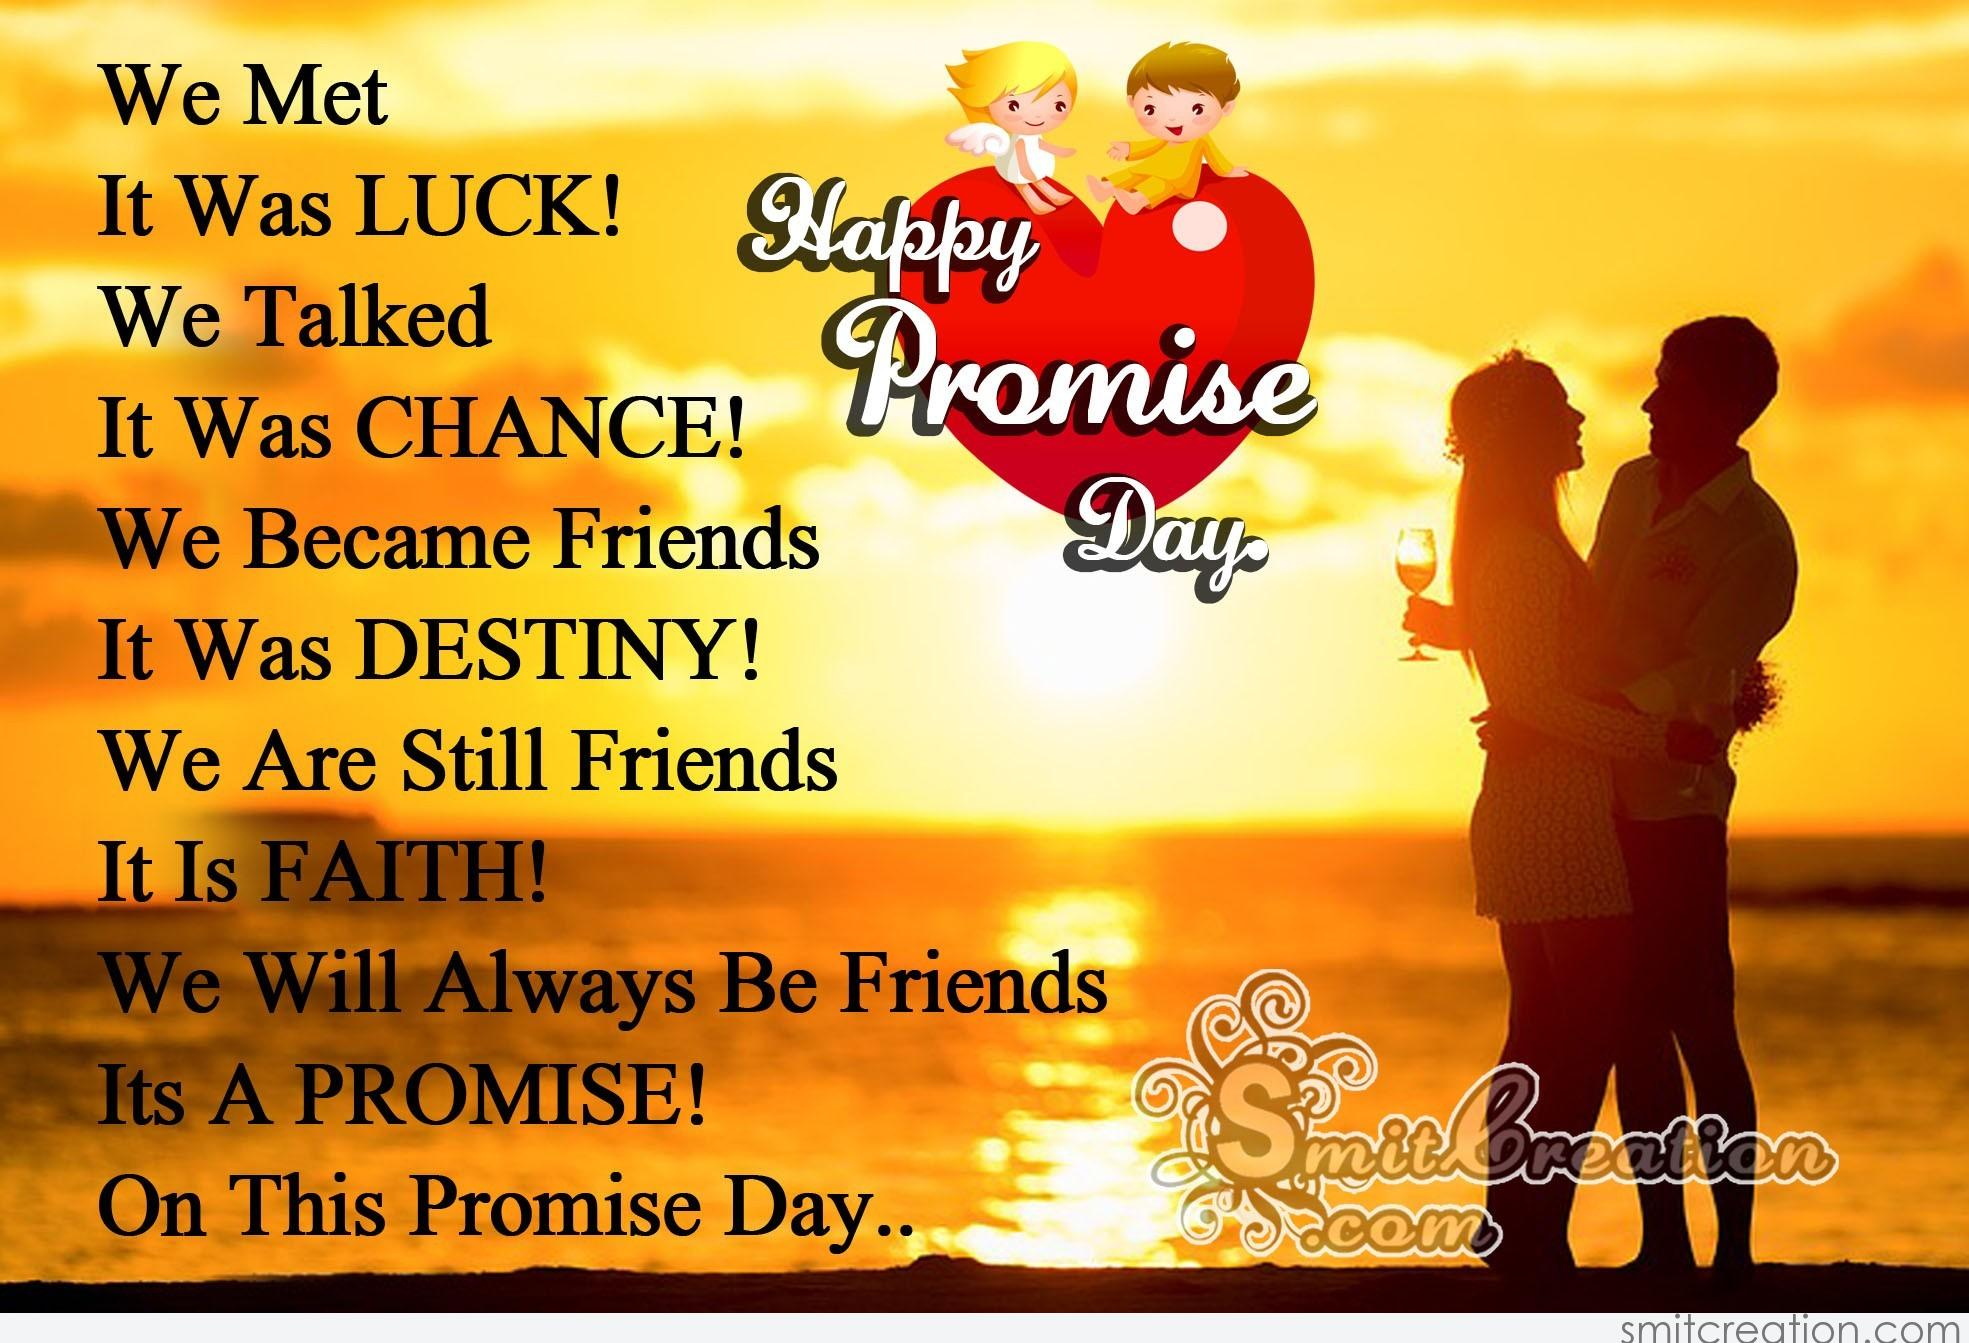 Happy Promise Day Quotes For Friends: We Will Always Be Friends